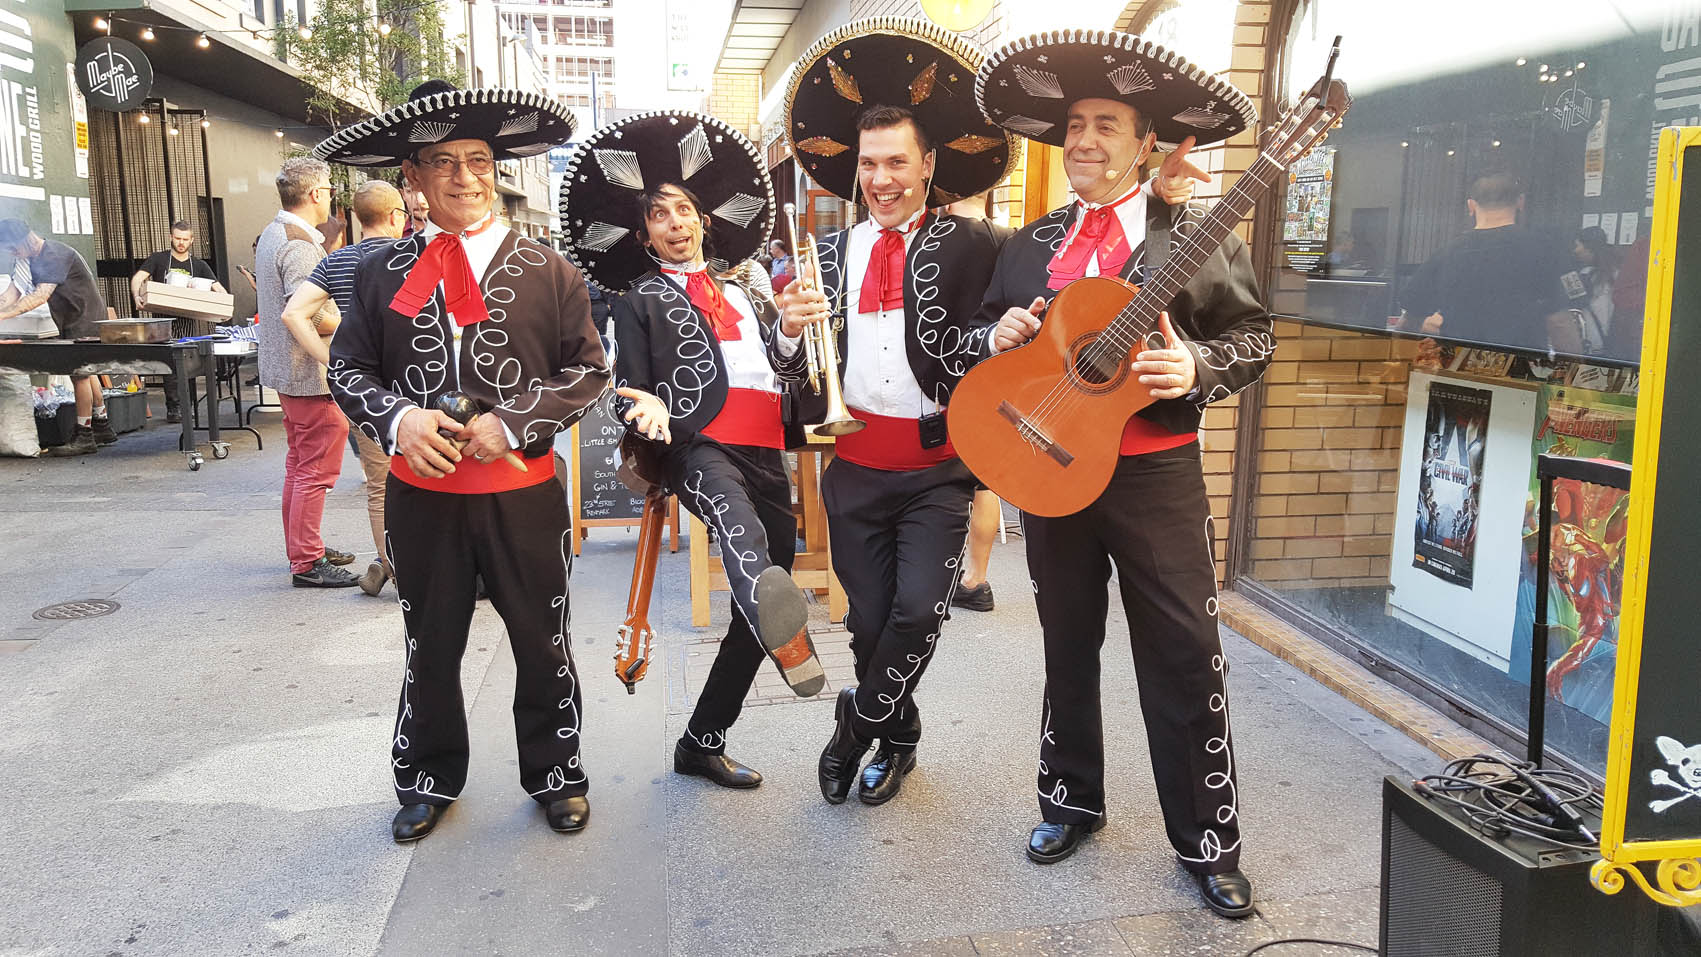 street-party-mexican-theme-adelaide-australia-singapore-melbourne-sydney-perth-duabi-hong-kong-japan-south-korea, entertainment adelaide